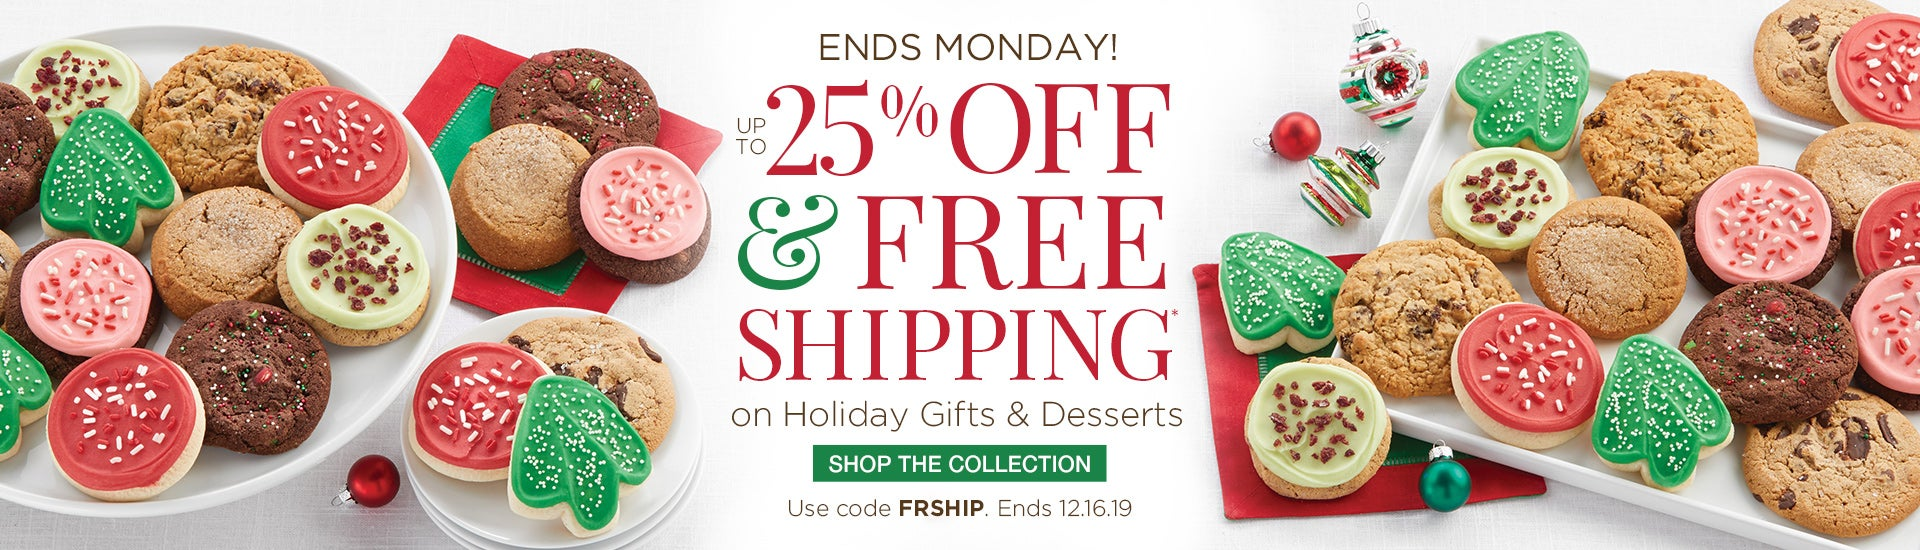 Save up to 25% + Free Shipping